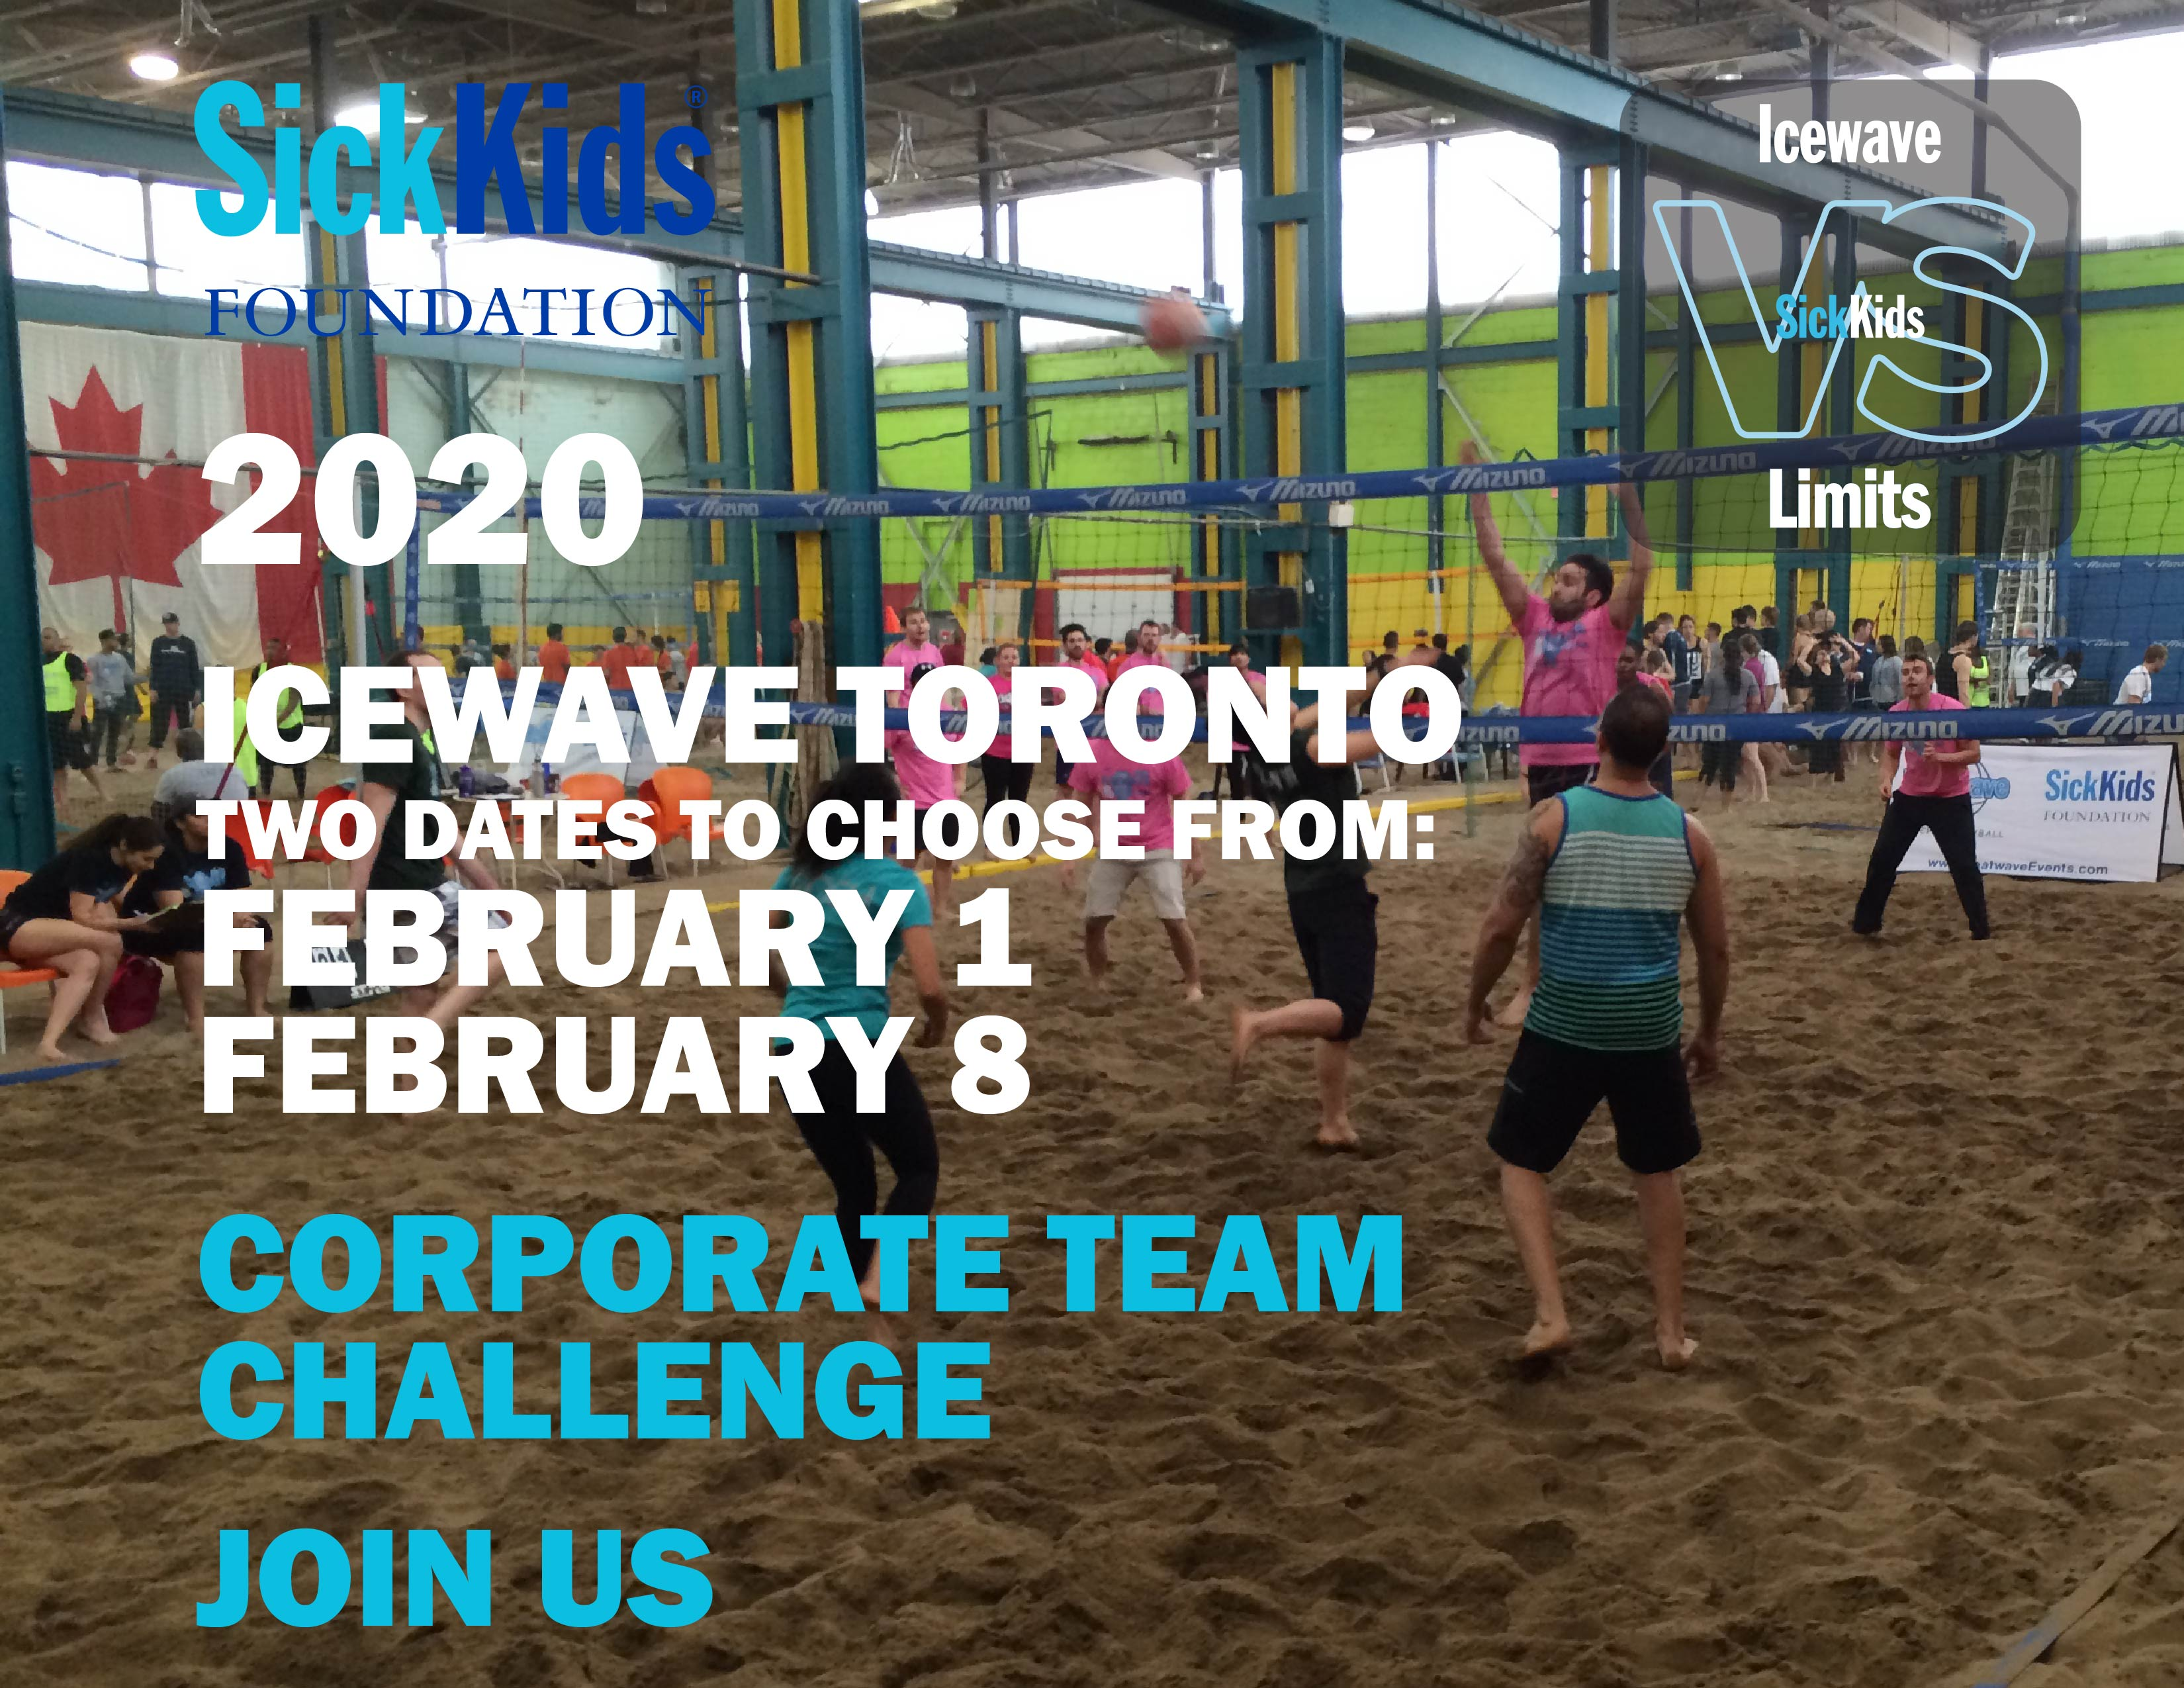 Icewave for SickKids Team Building Corporate Challenge Page 1